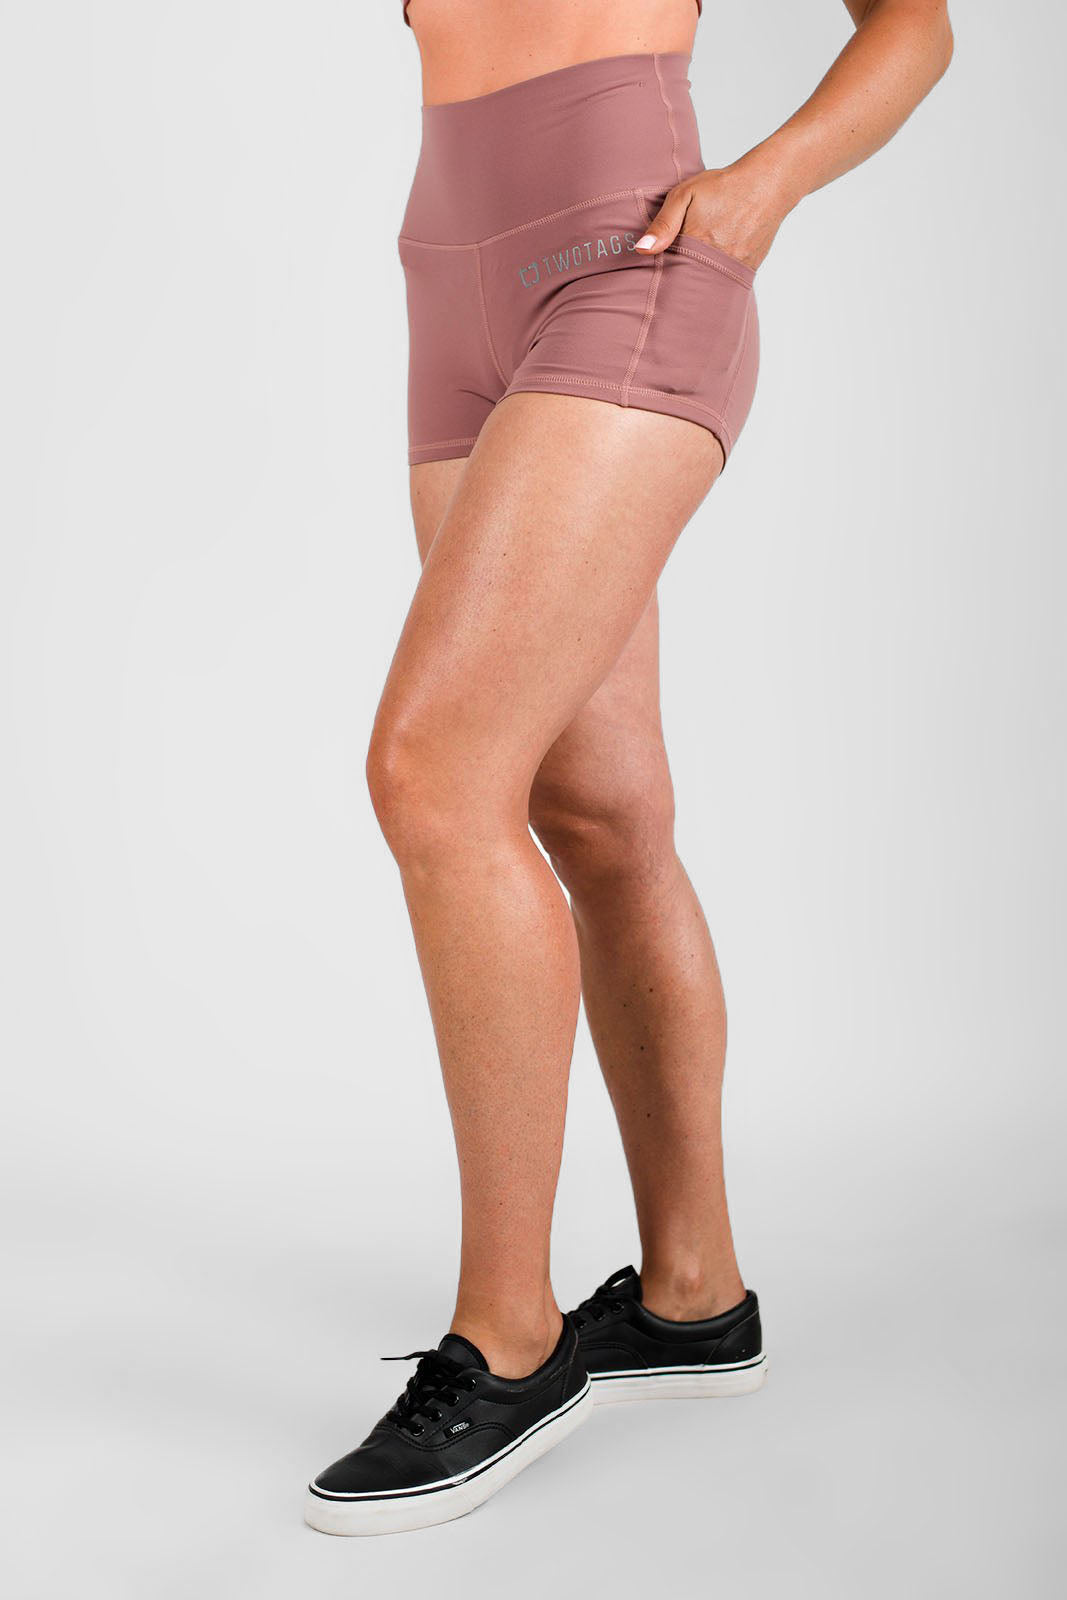 Twotags Ladies Highwaisted Scrunch Shorts – Mauve